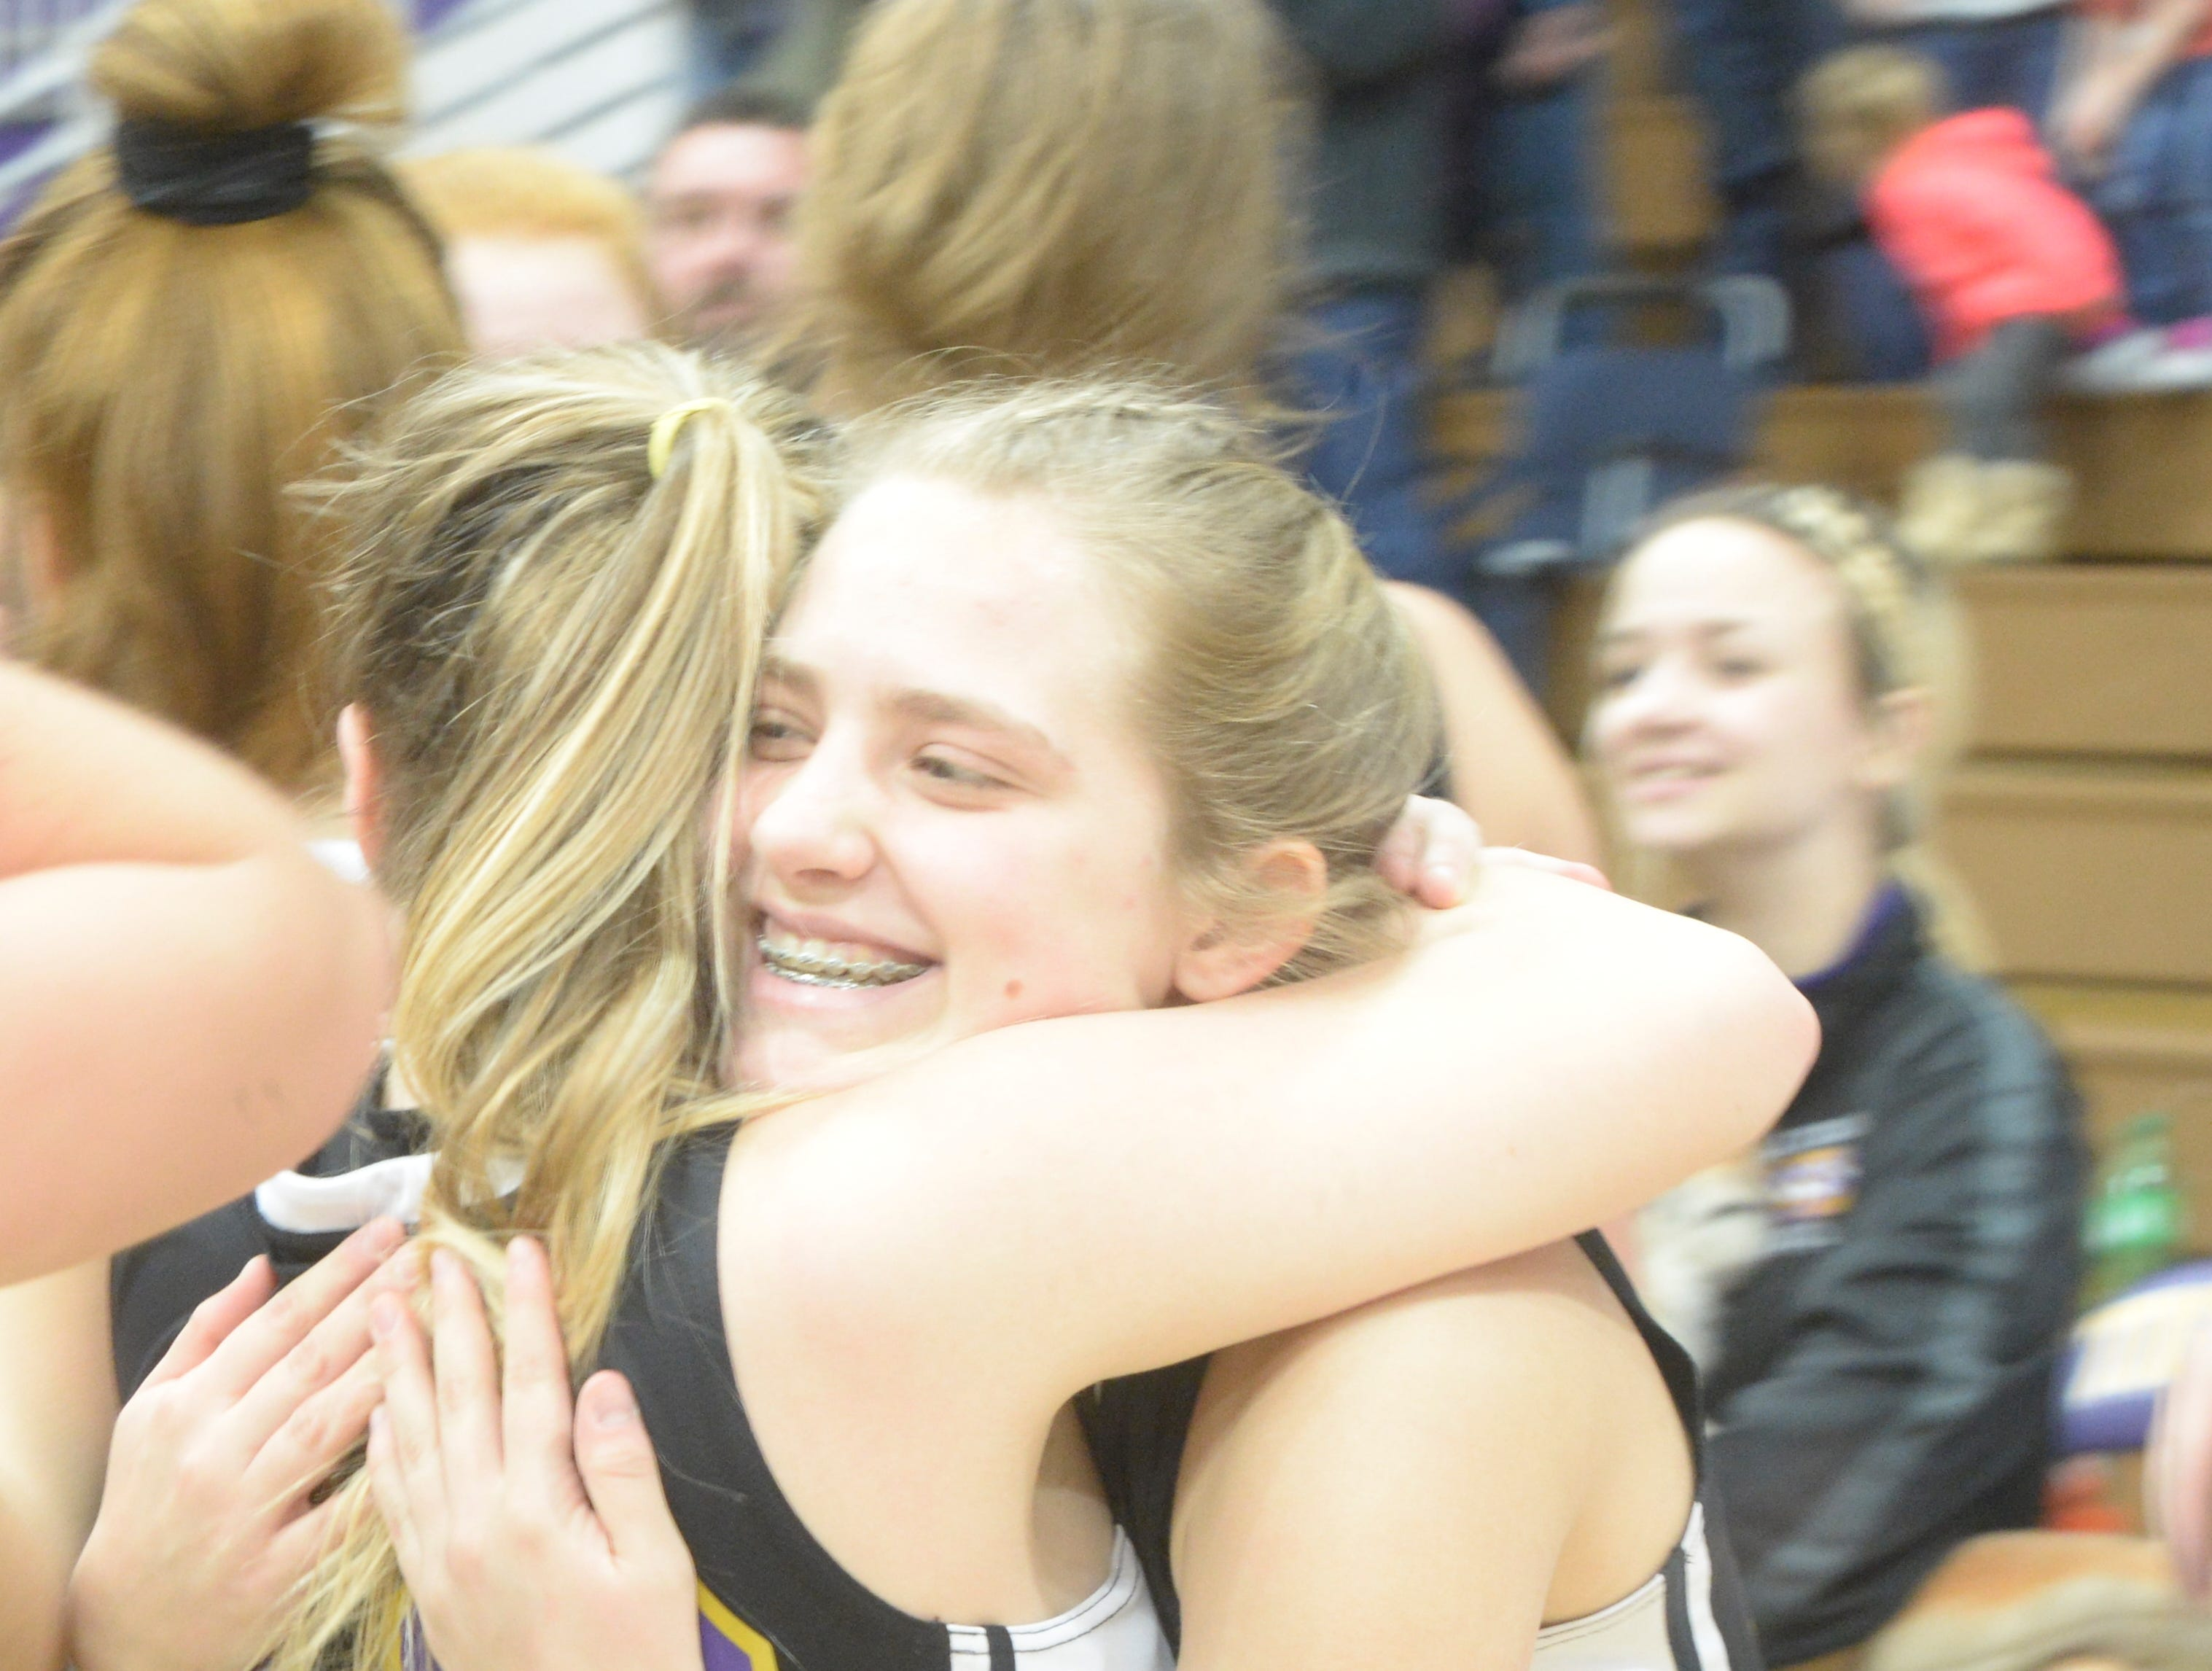 Members of Hagerstown's girls basketball team celebrate following the Wayne County girls basketball championship at Hagerstown Saturday, Jan. 5, 2019. Hagerstown defeated Northeastern 37-35 to win the girls' title, and Northeastern beat Hagerstown 60-49 in the boys championship.